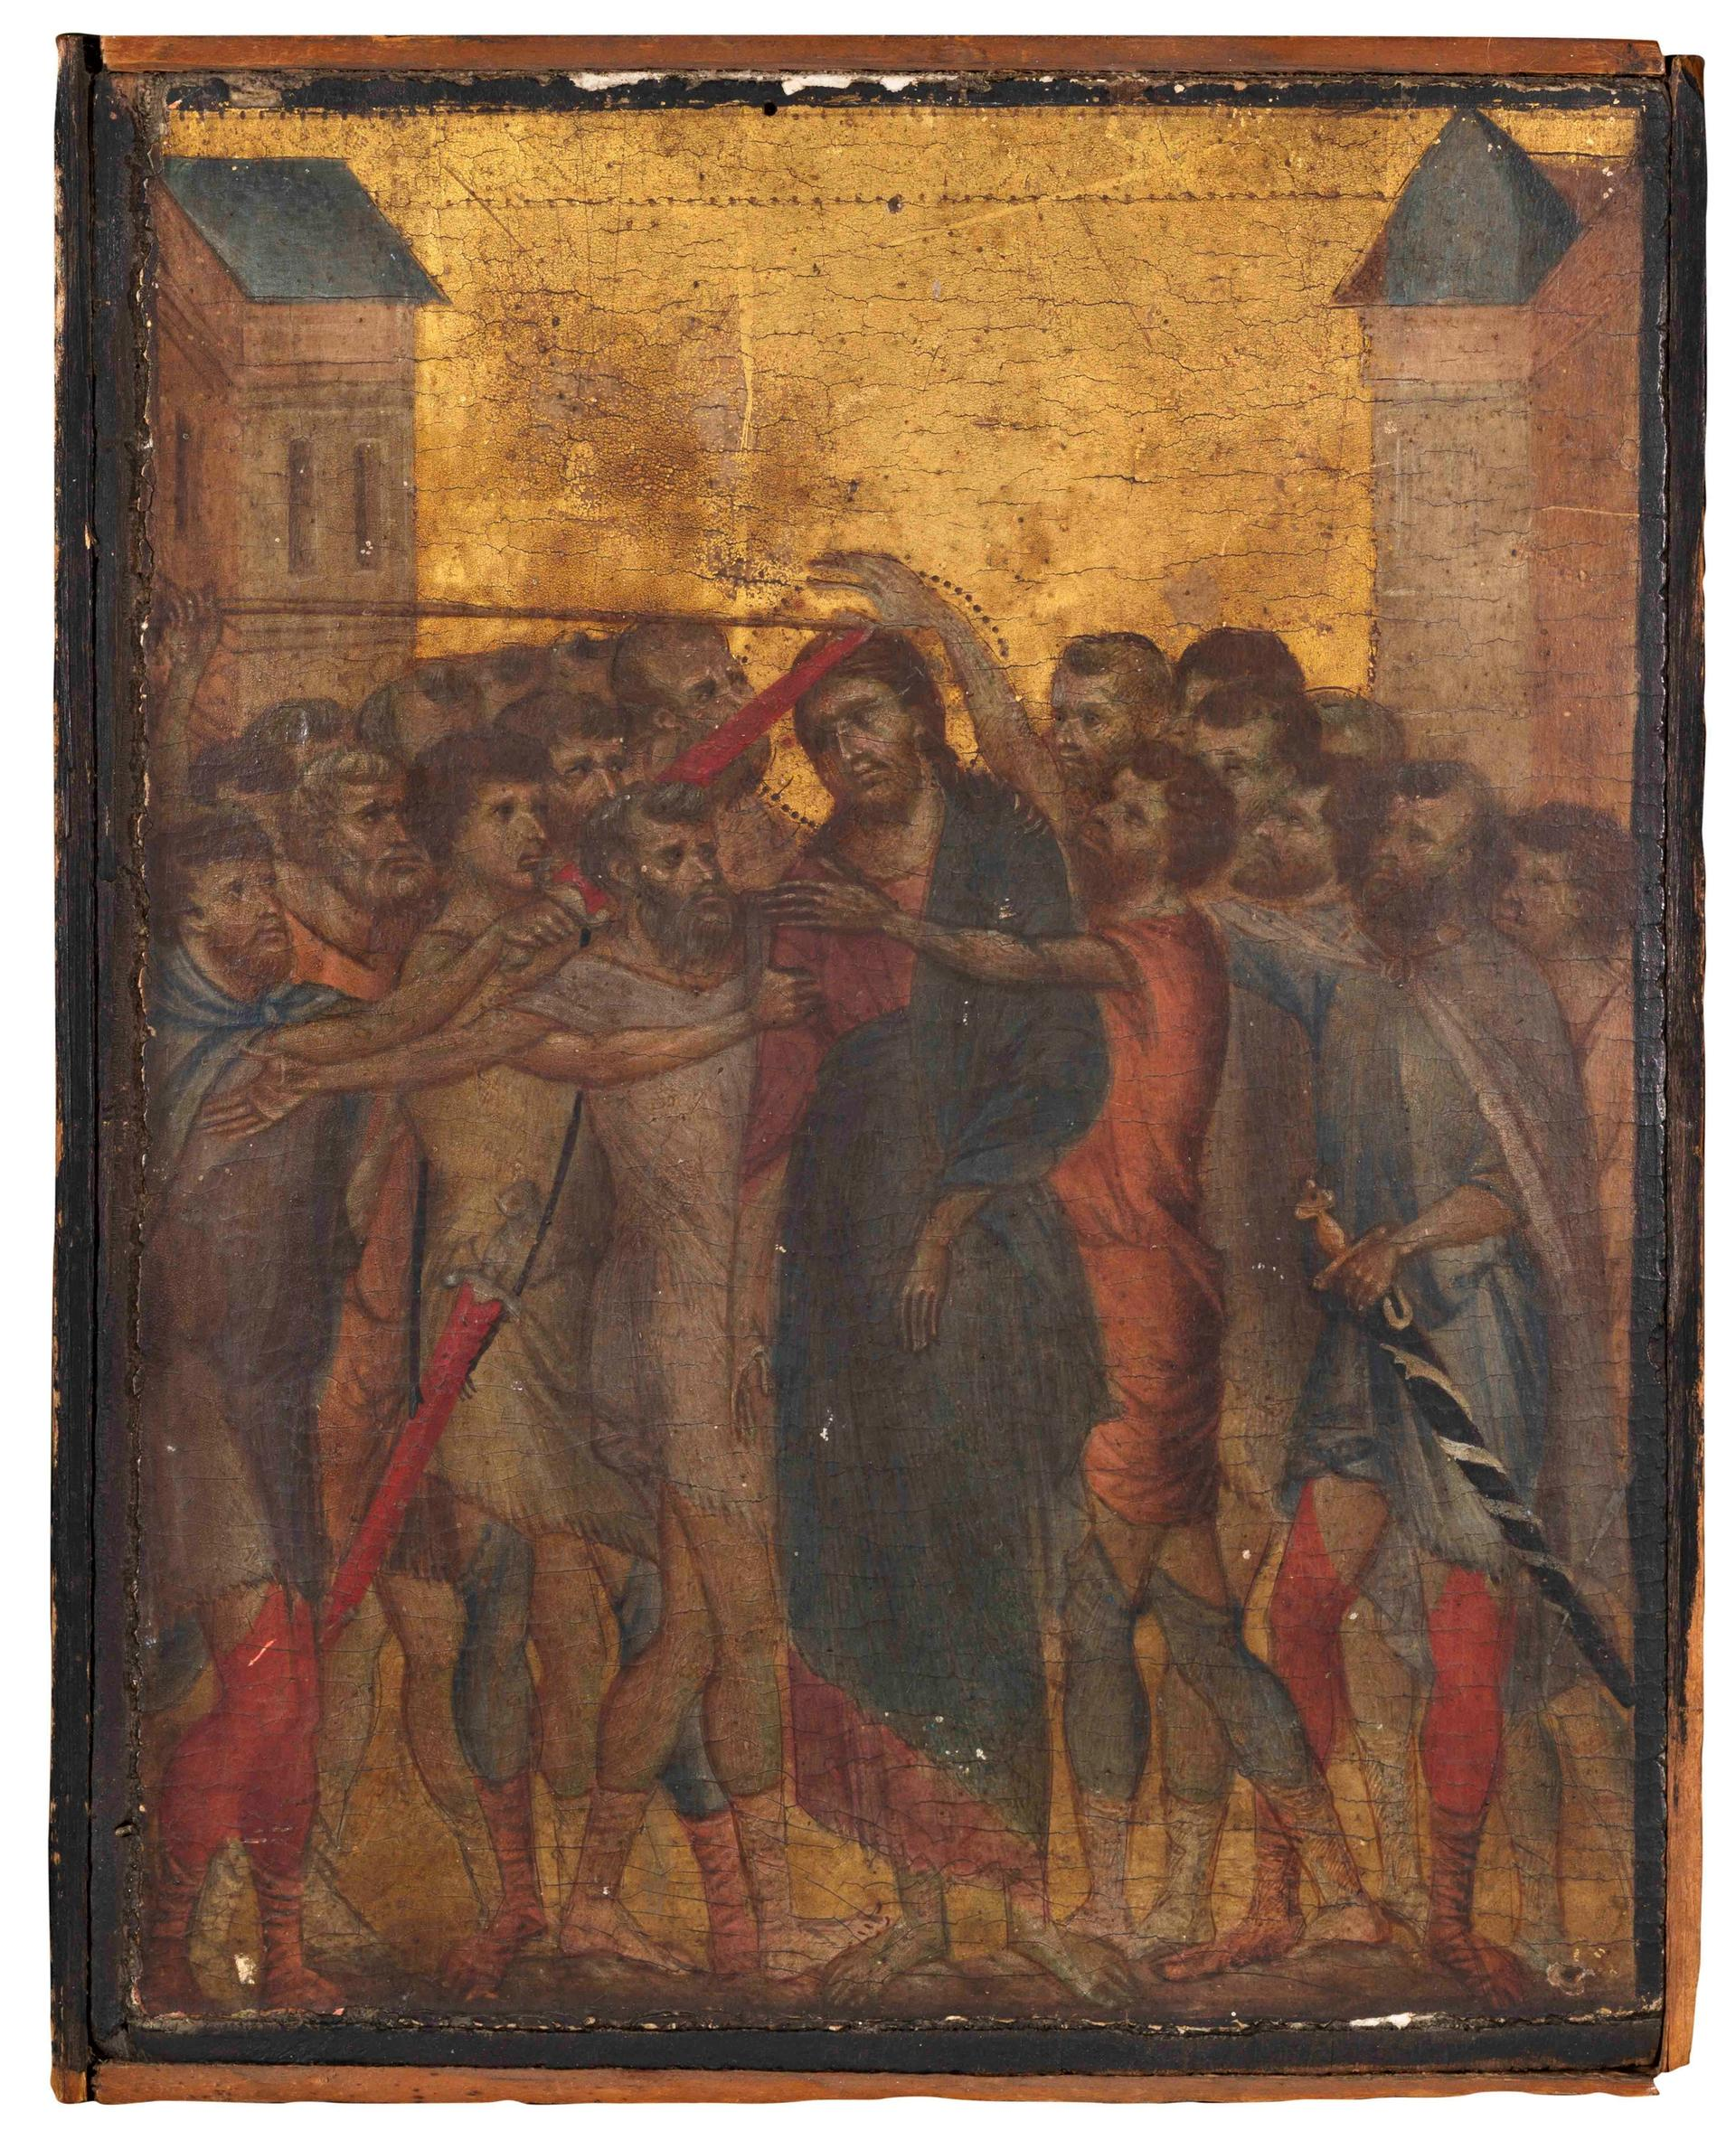 This small panel by the Florentine artist Cimabue was sold in France today for €24.1m to an anonymous collector Courtesy of Actéon and Eric Turquin